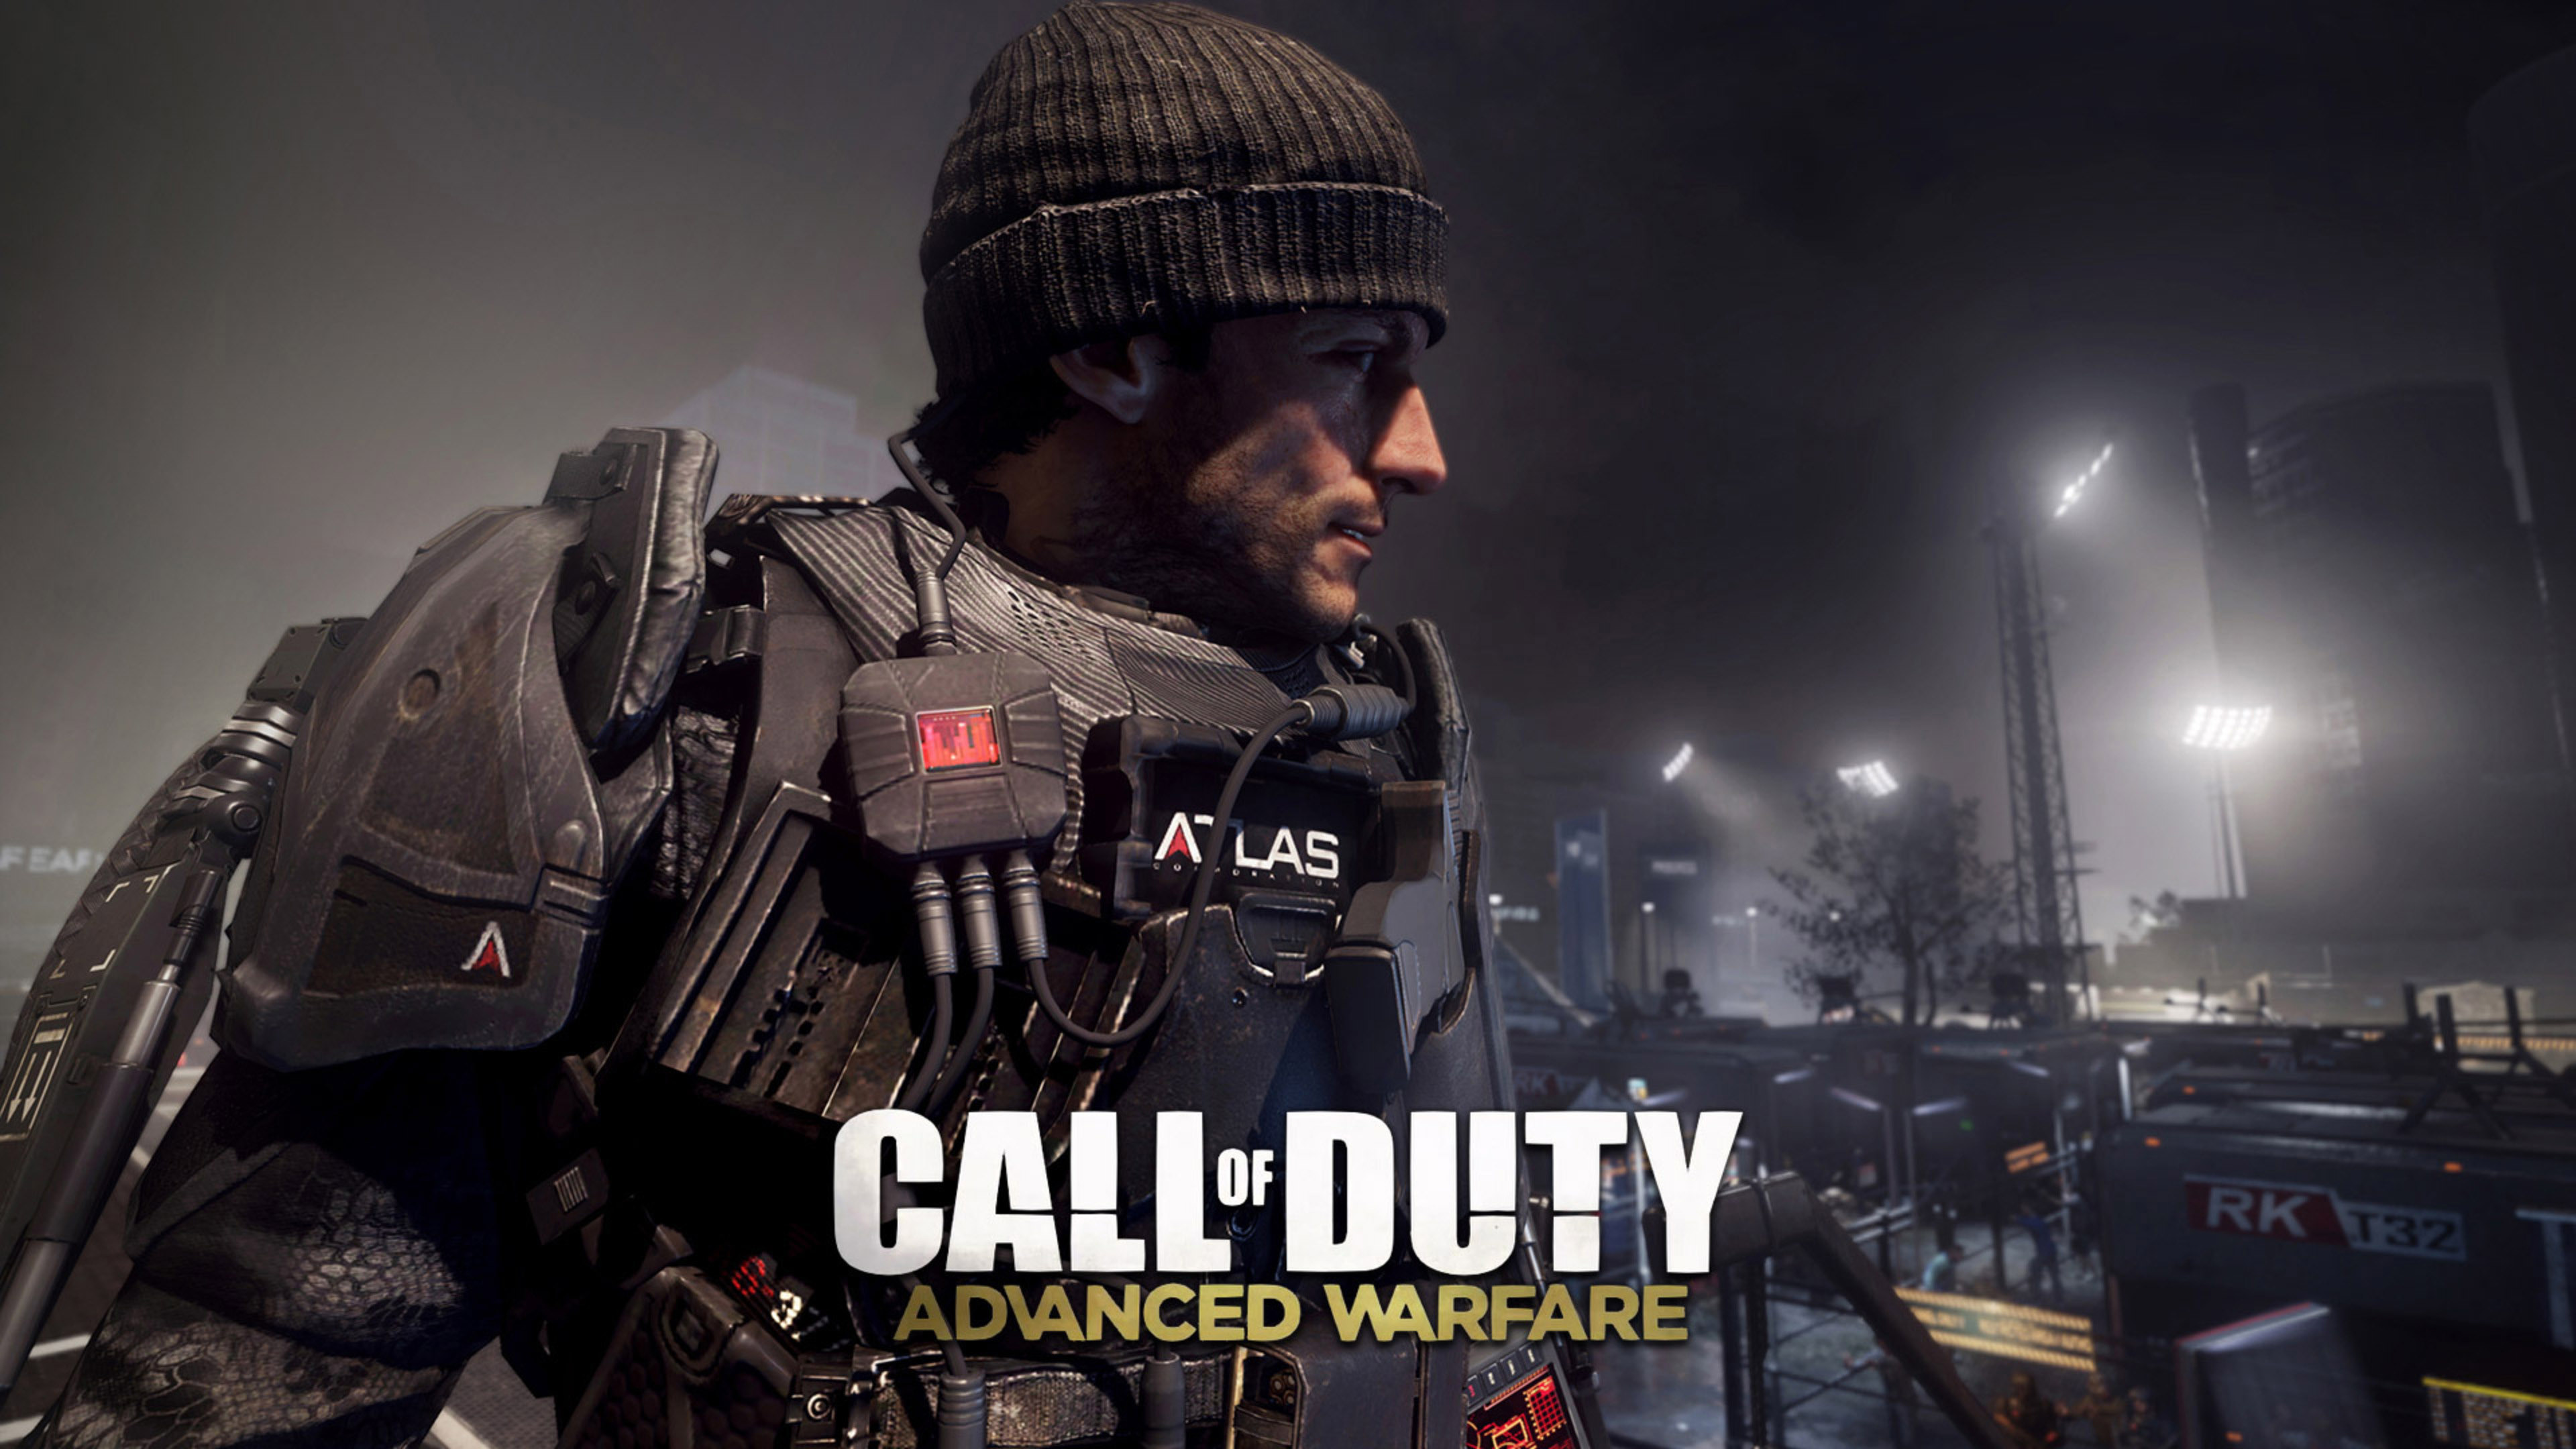 Call Of Duty Advanced Warfare PS4 Wallpapers   PS4 3840x2160